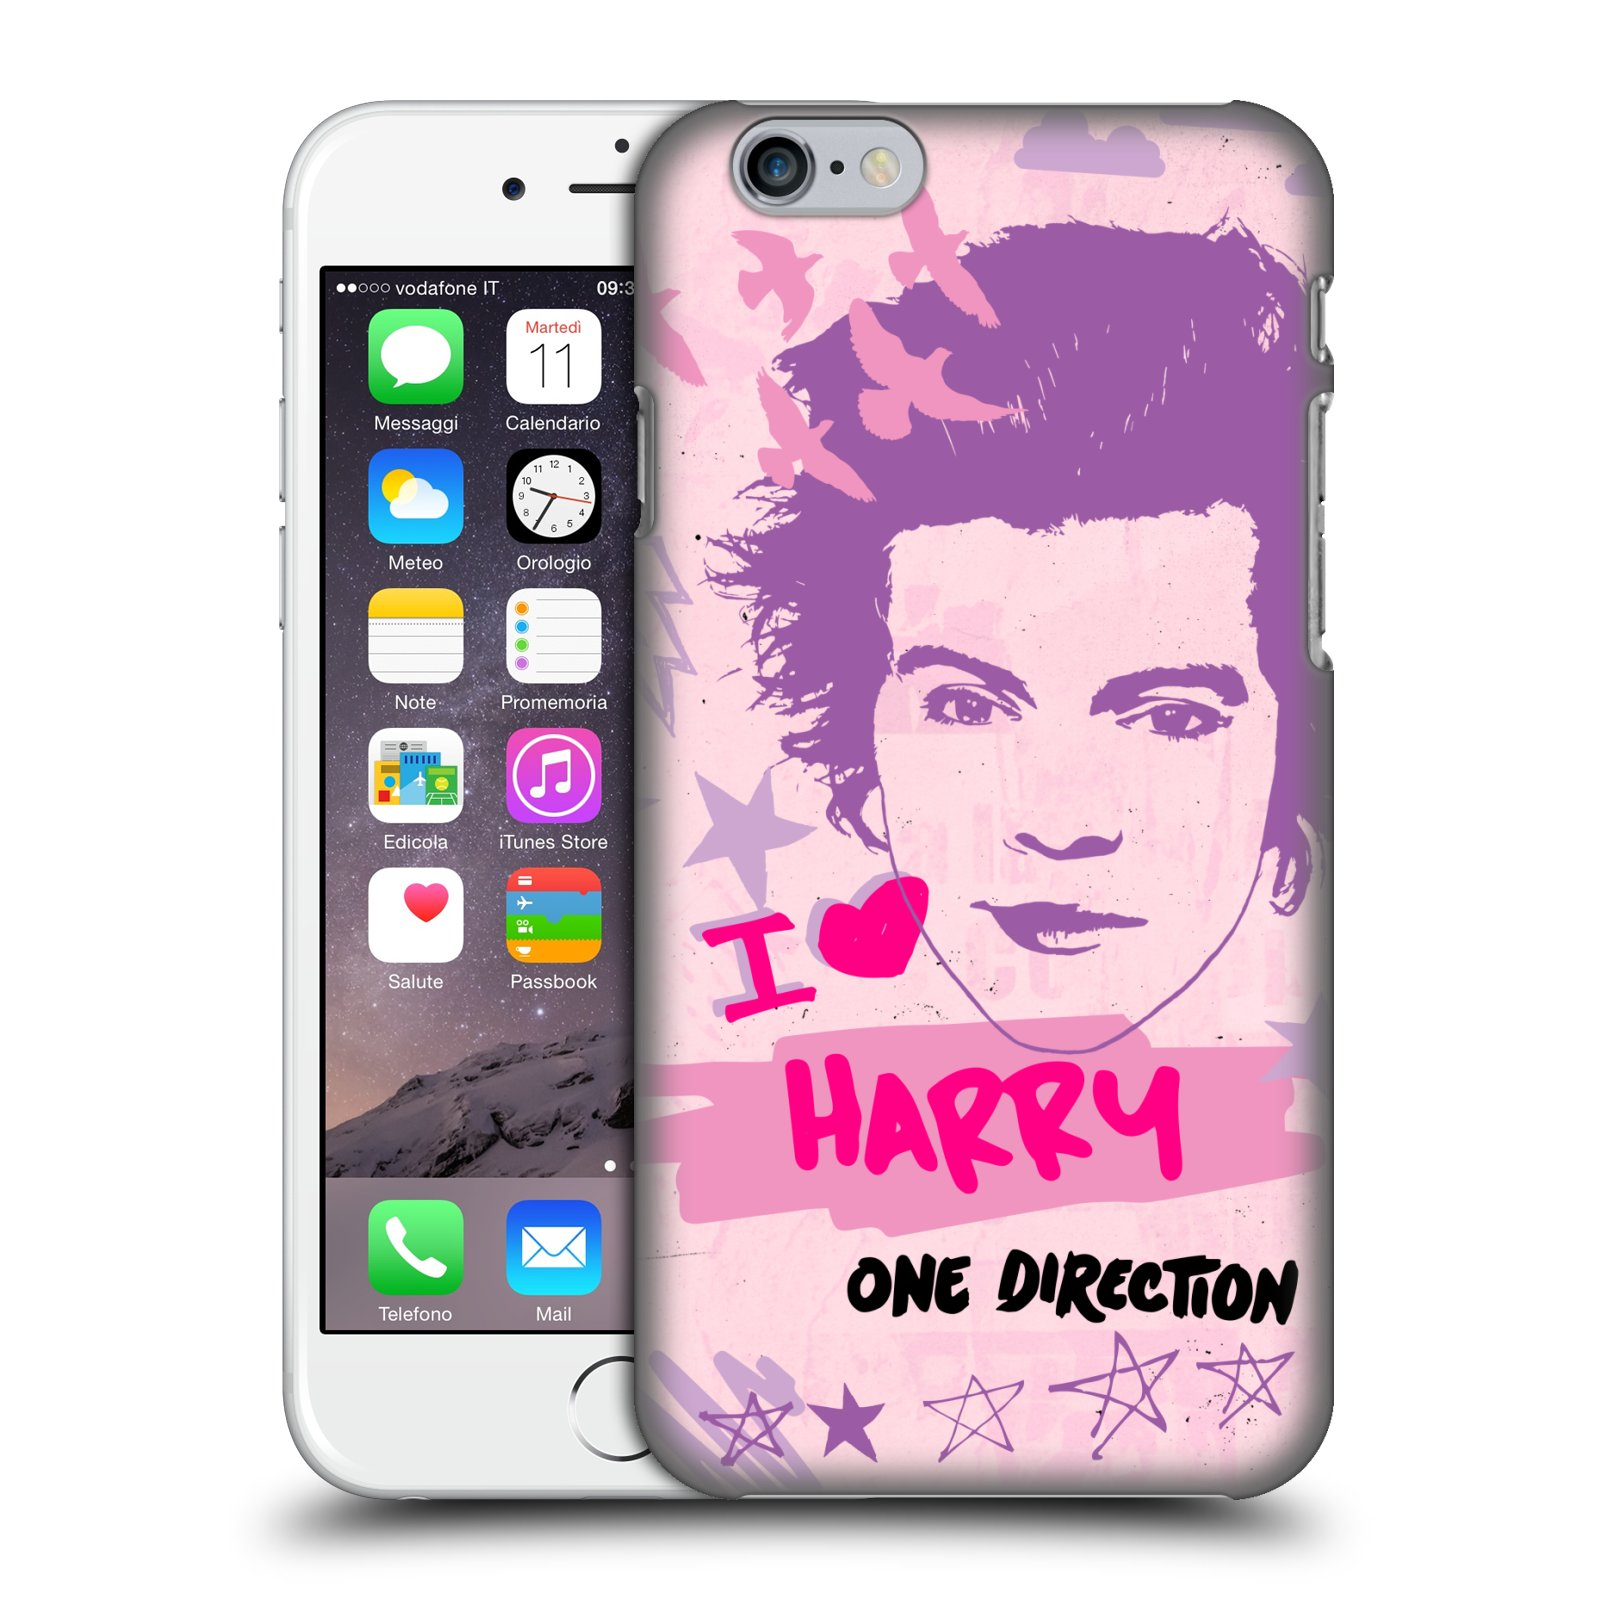 OFFICIAL-ONE-DIRECTION-PINK-GRAPHIC-FACES-HARD-BACK-CASE-FOR-APPLE-iPHONE-6-4-7